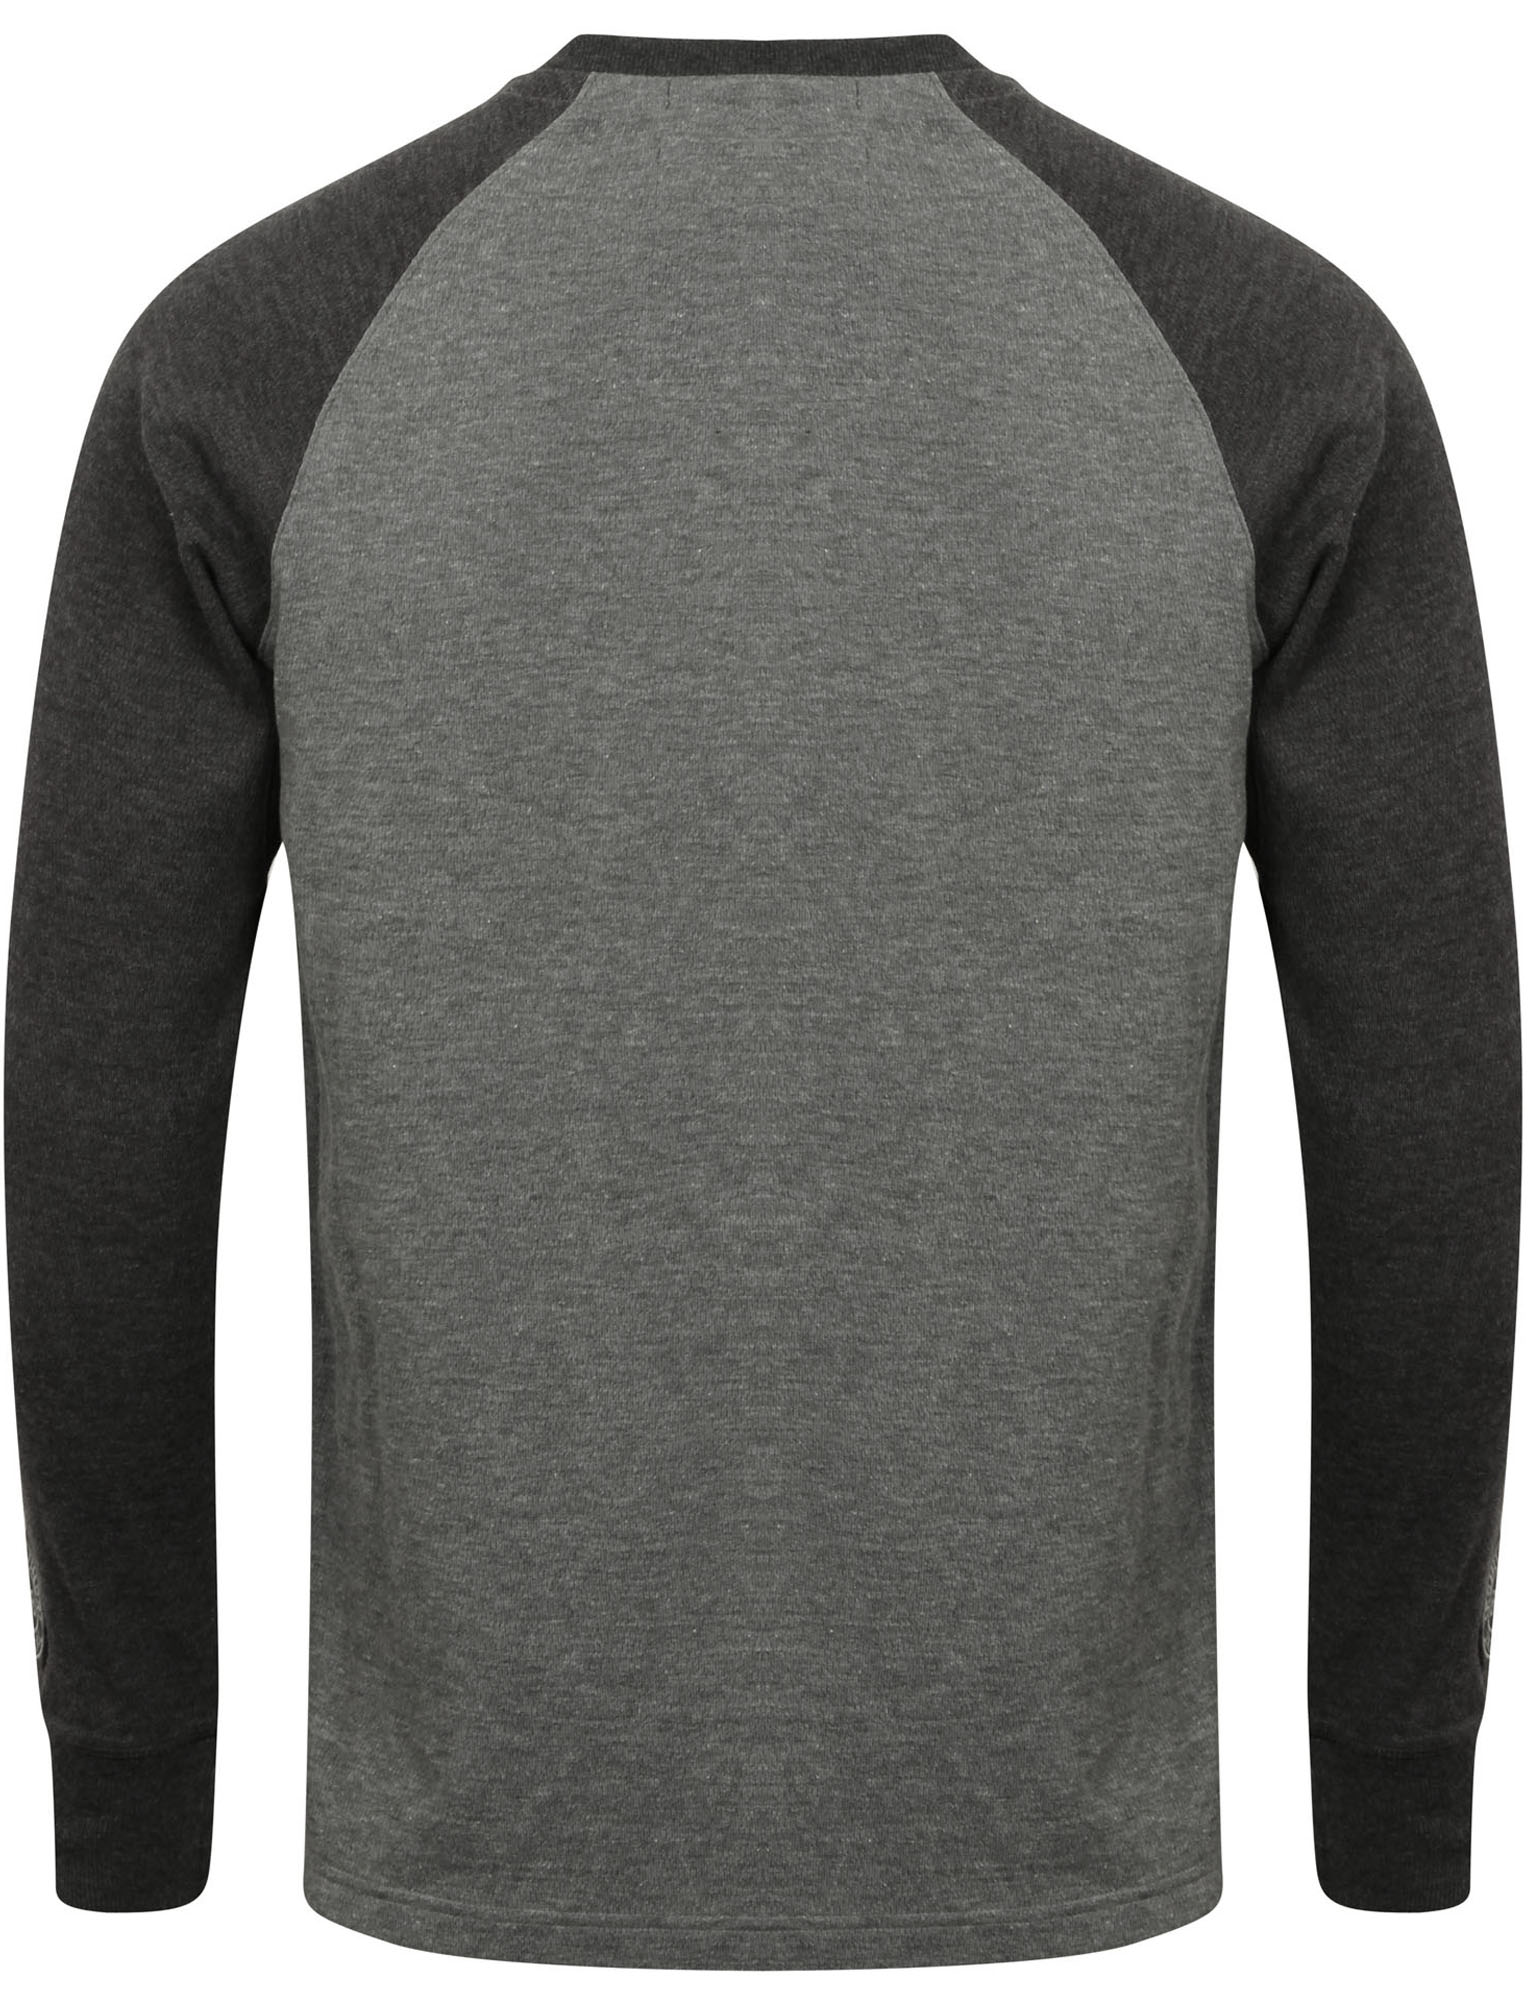 New-Mens-Tokyo-Laundry-Branded-Soft-Jersey-Long-Sleeve-Tops-T-Shirts-Size-S-XL thumbnail 5